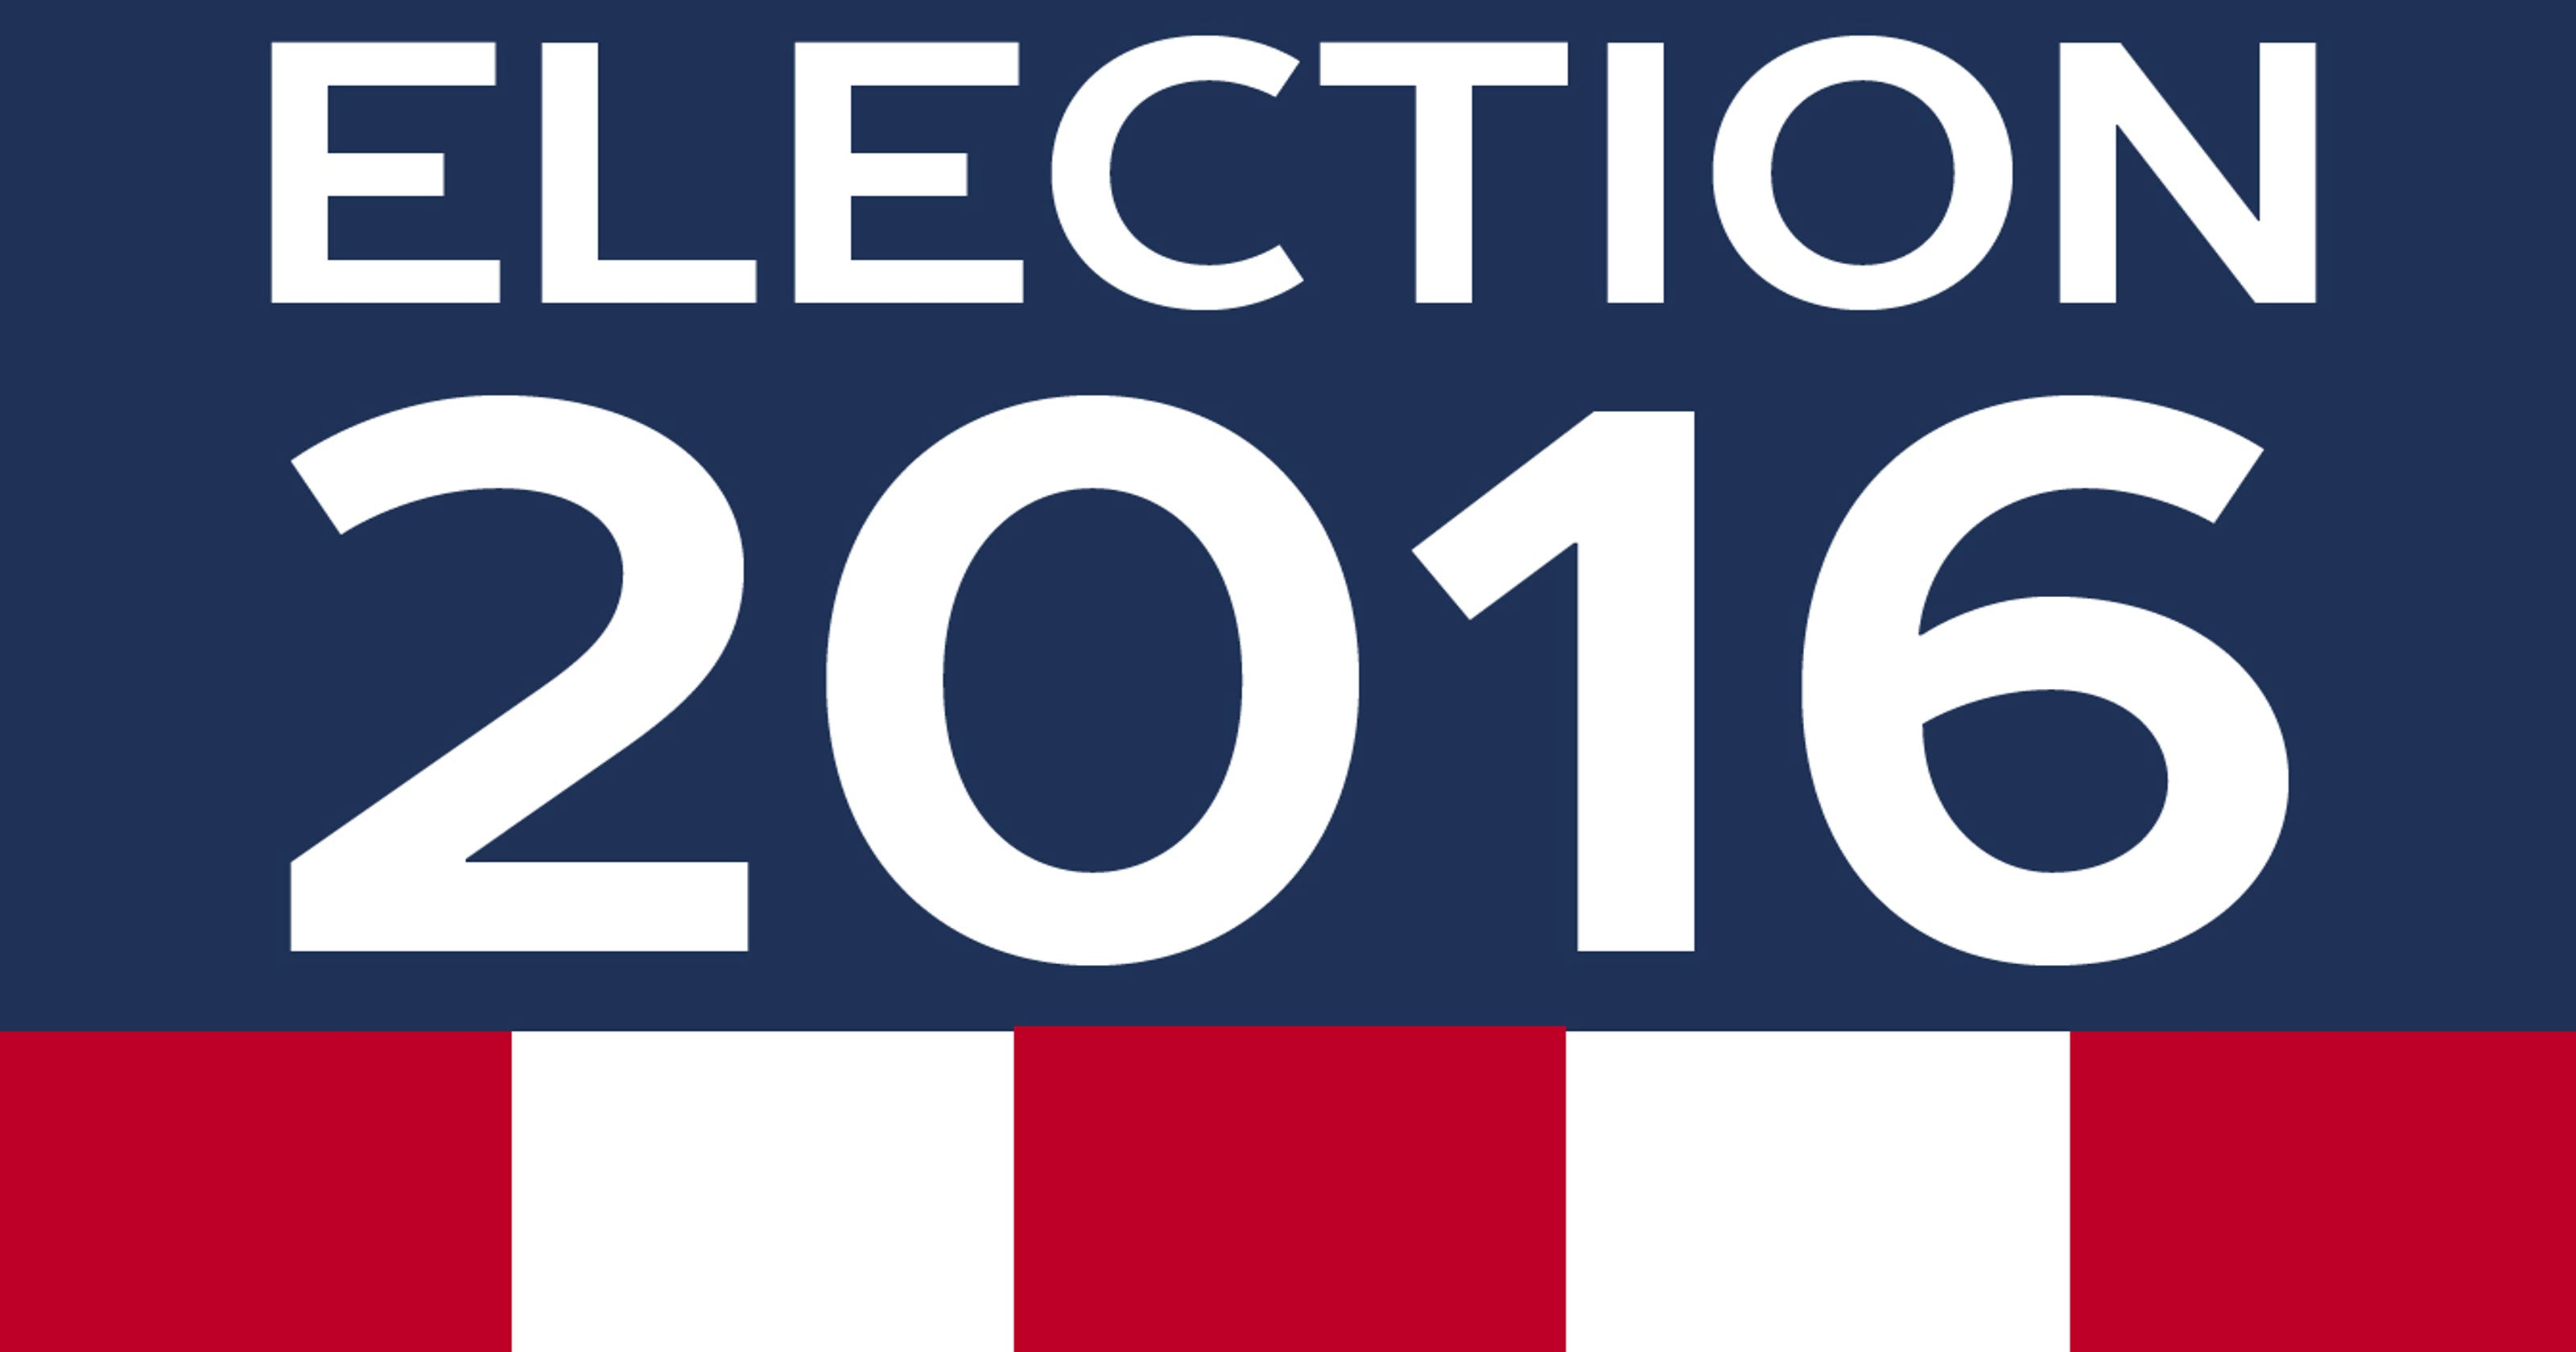 Section 1111 b 2 election